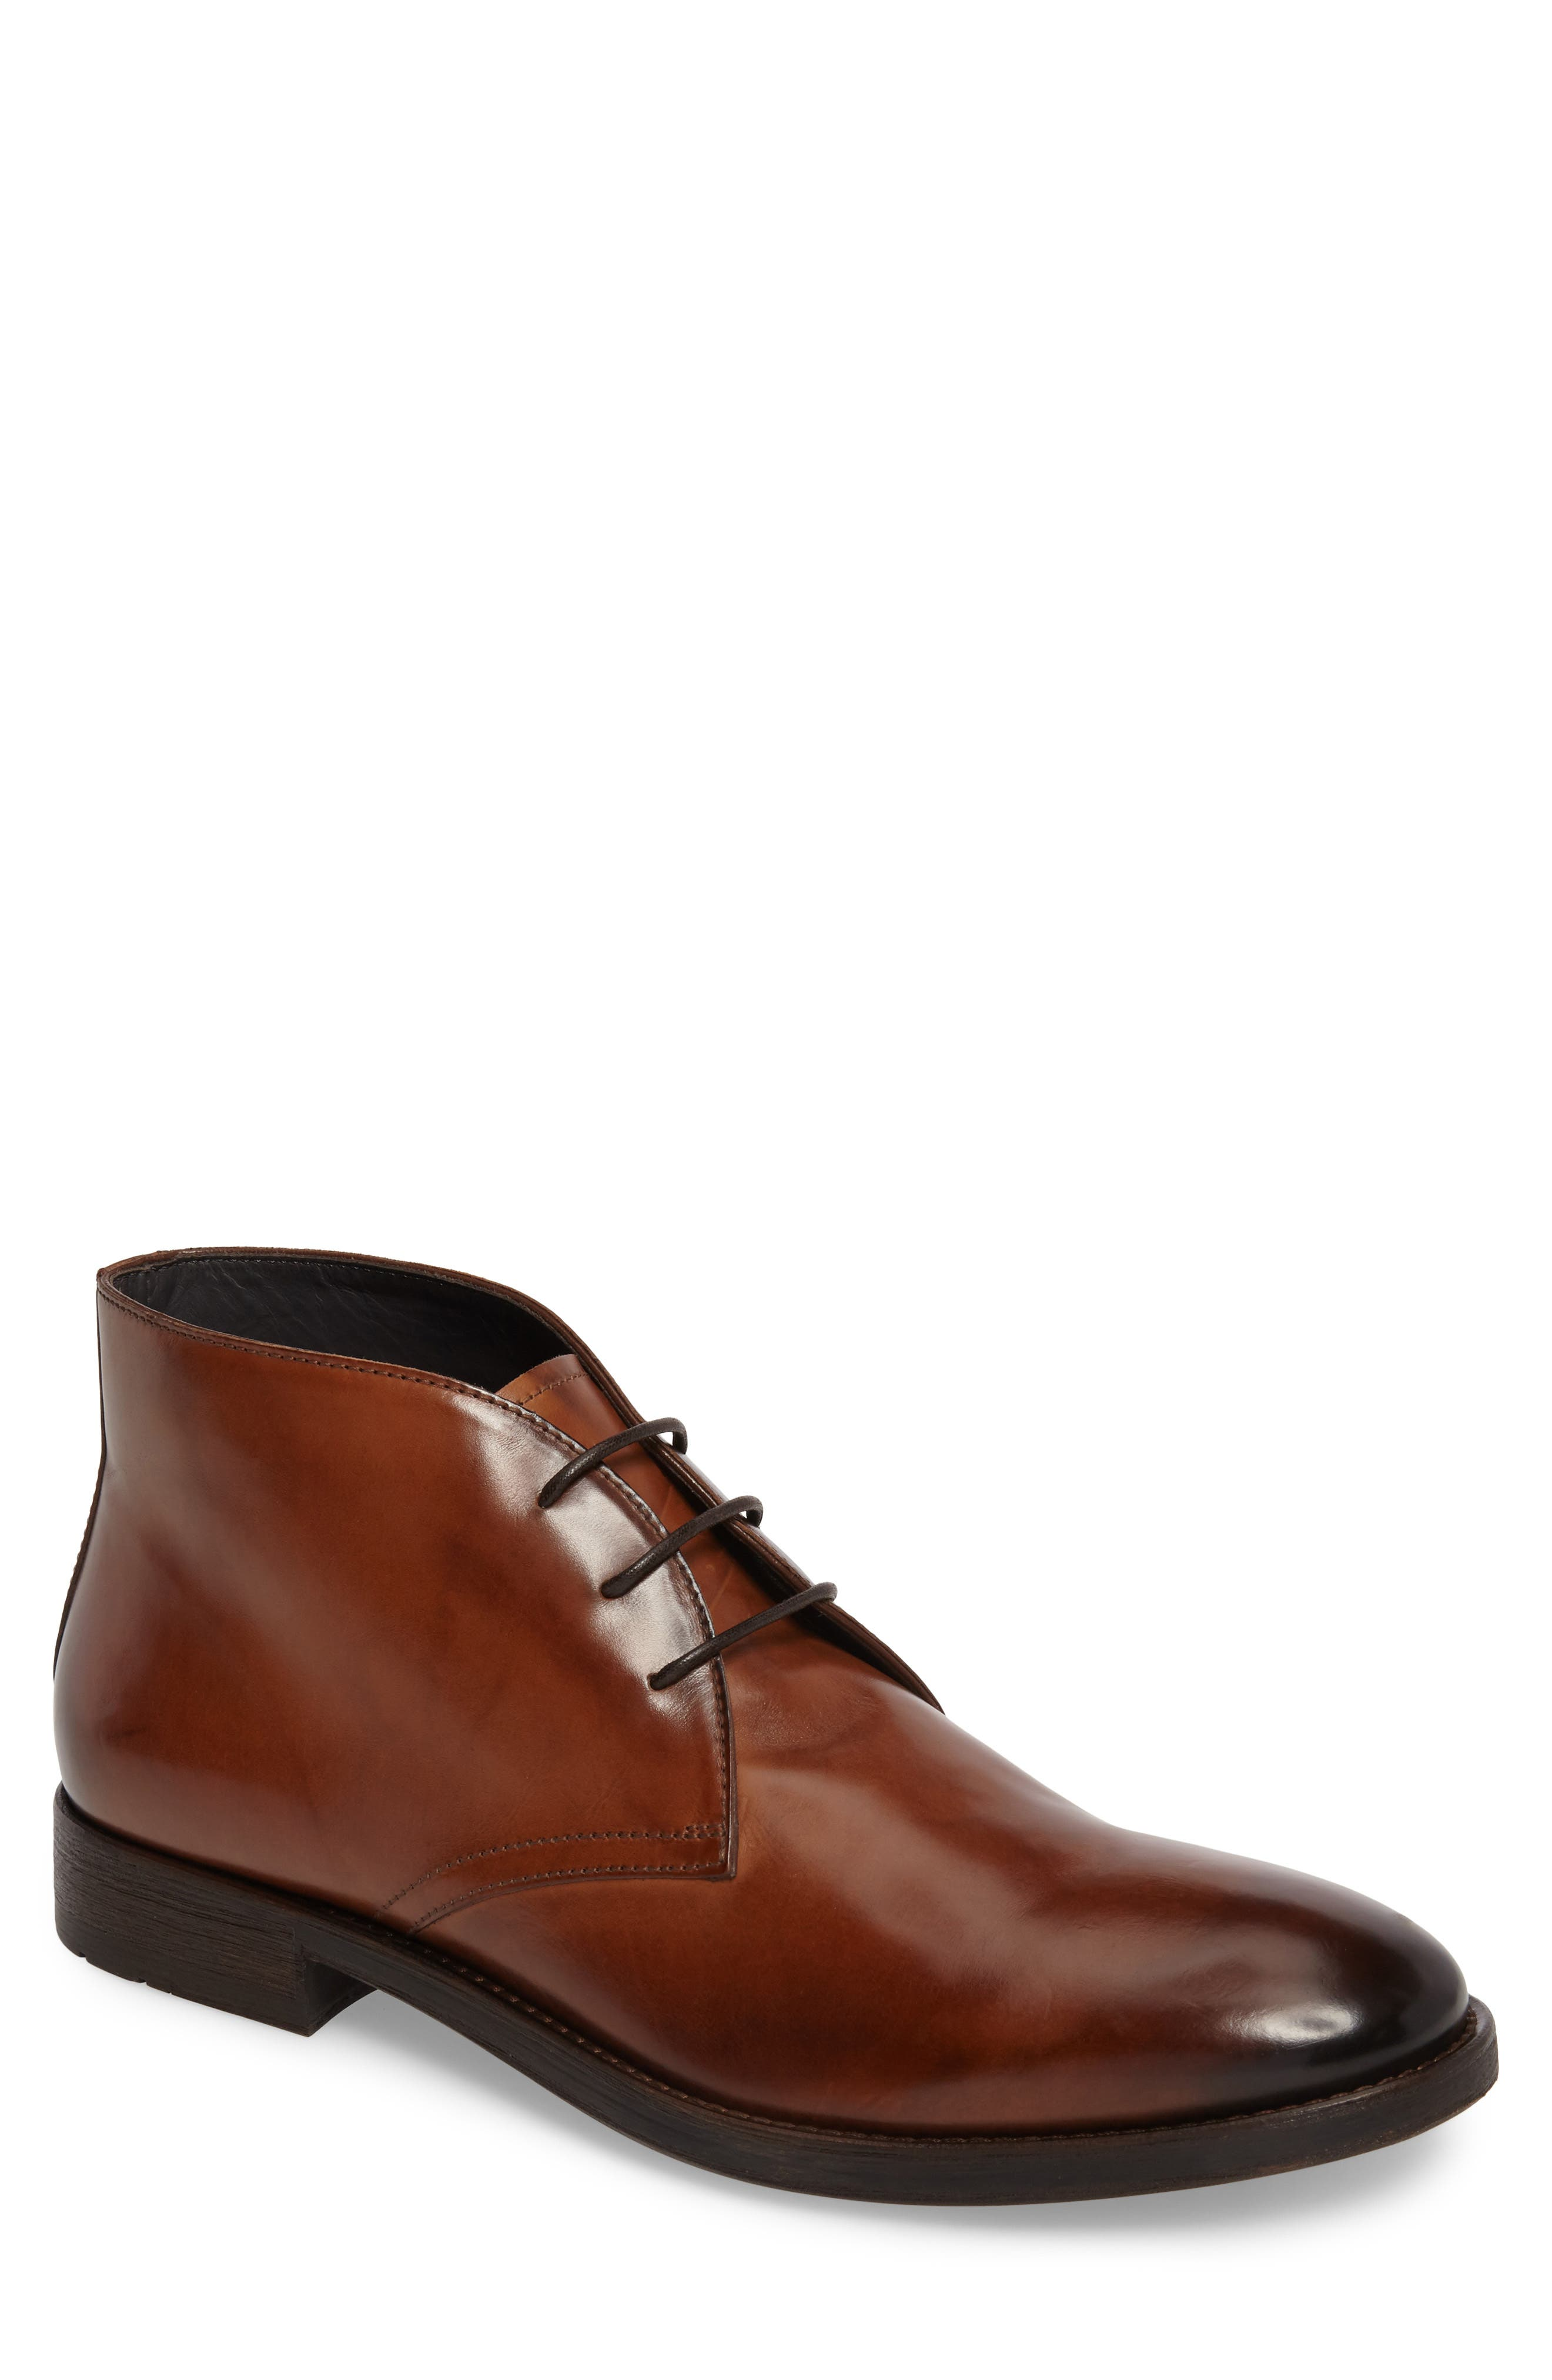 Alternate Image 1 Selected - To Boot New York Connor Chukka Boot (Men)